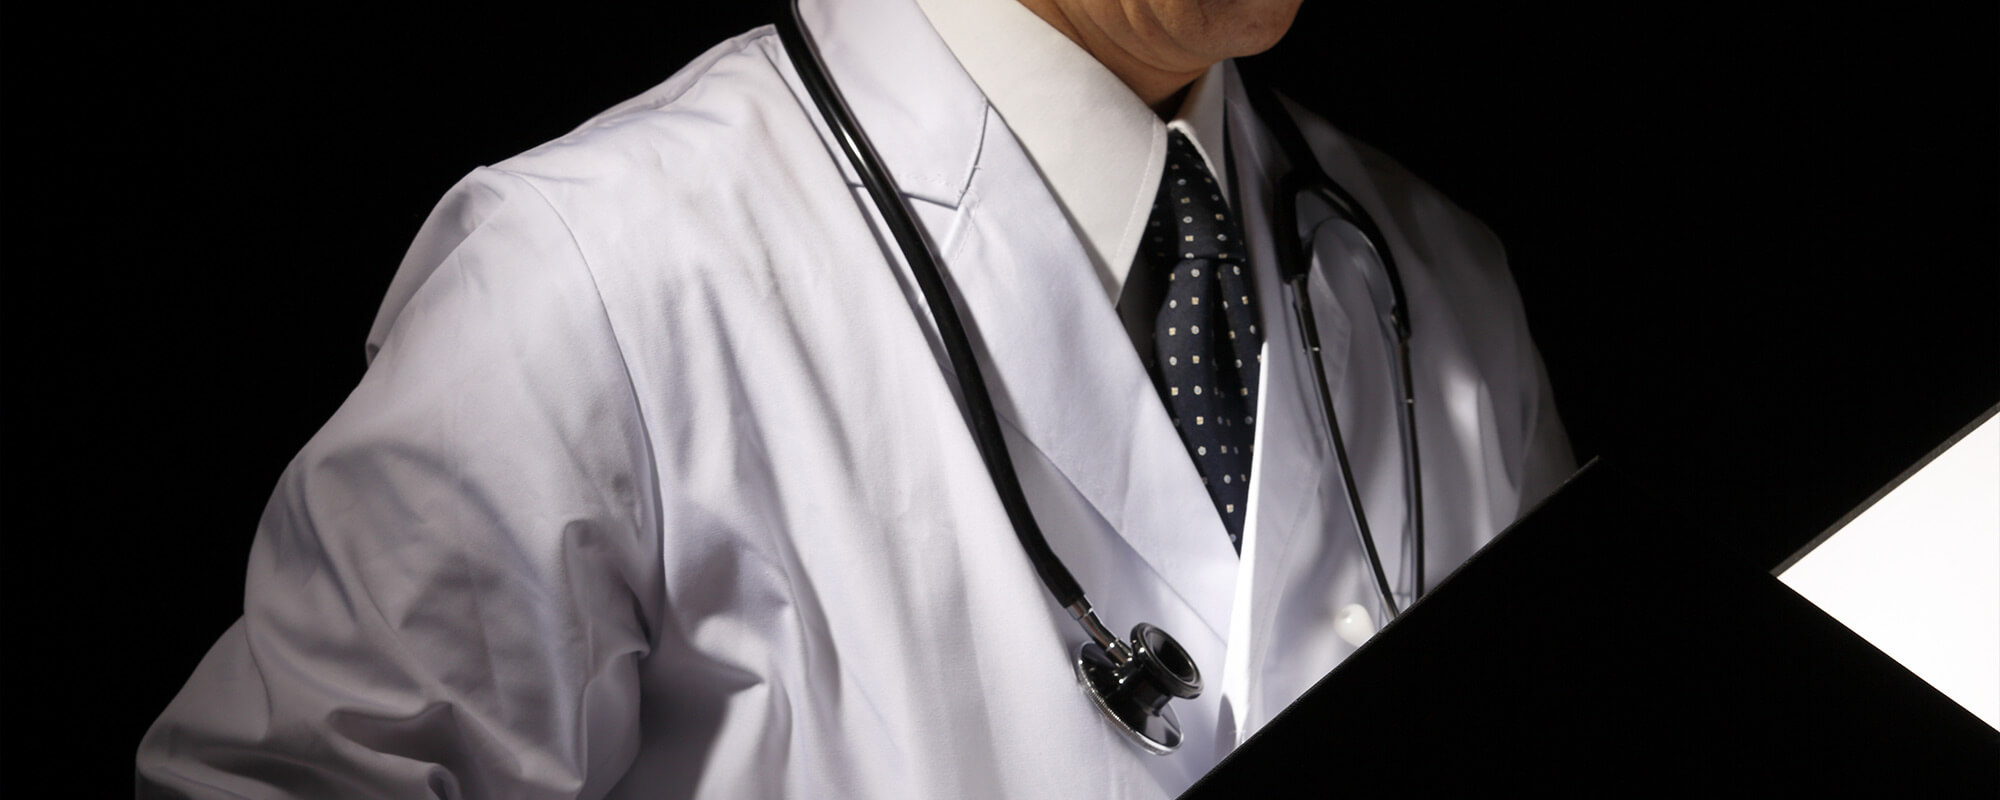 Doctor guilty of medical malpractice against client of Ward & Barnes, P.A., Attorneys at Law